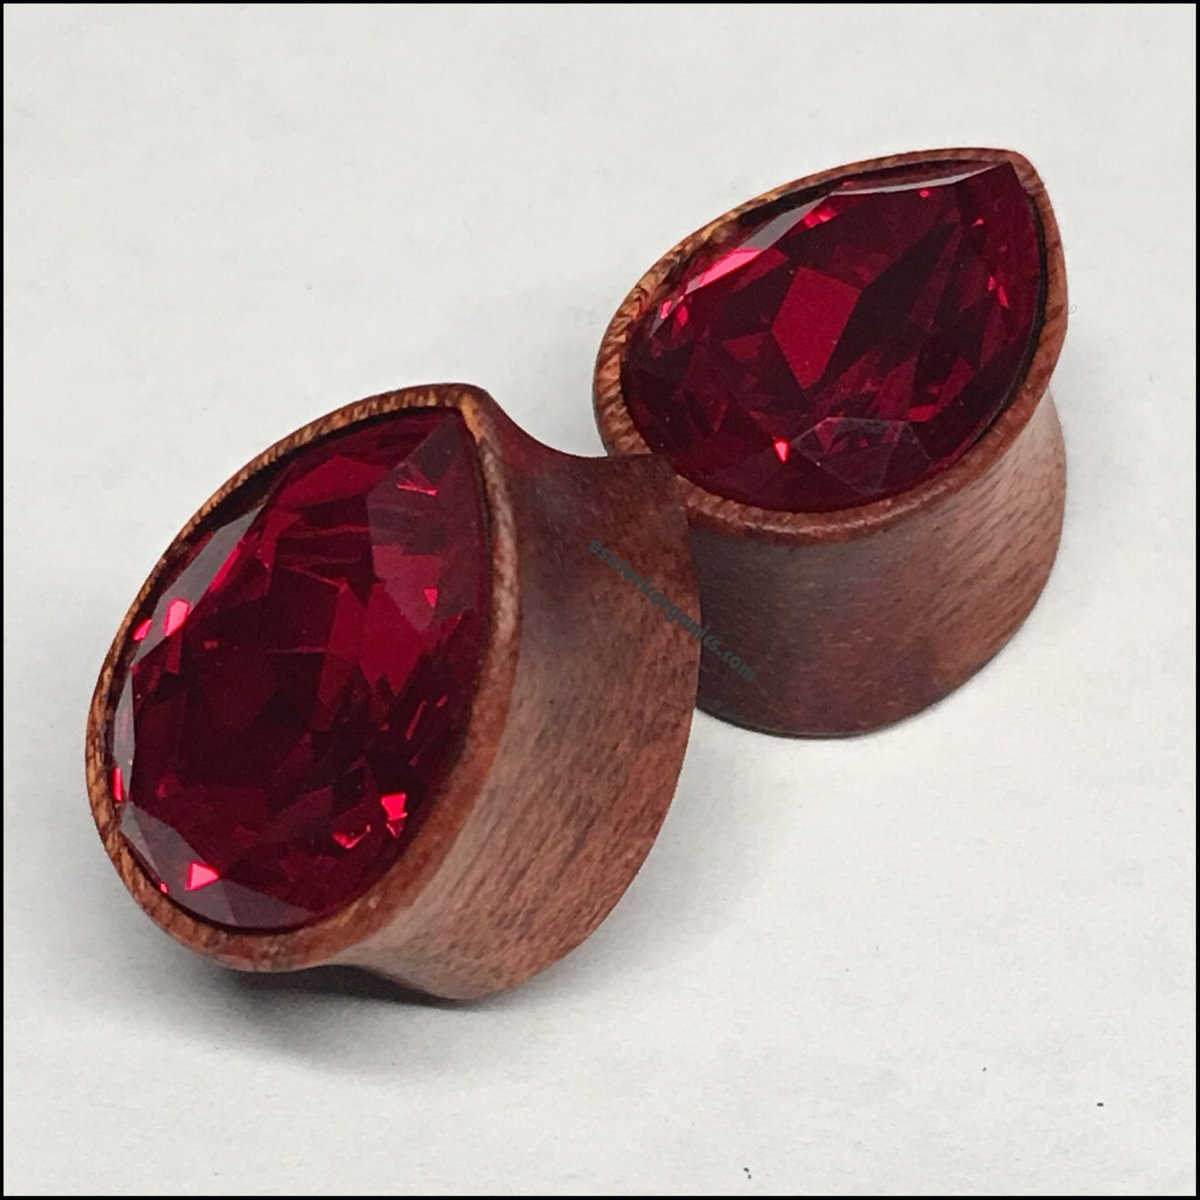 Bloodwood Med Swarovski Ruby Teardrop Plugs